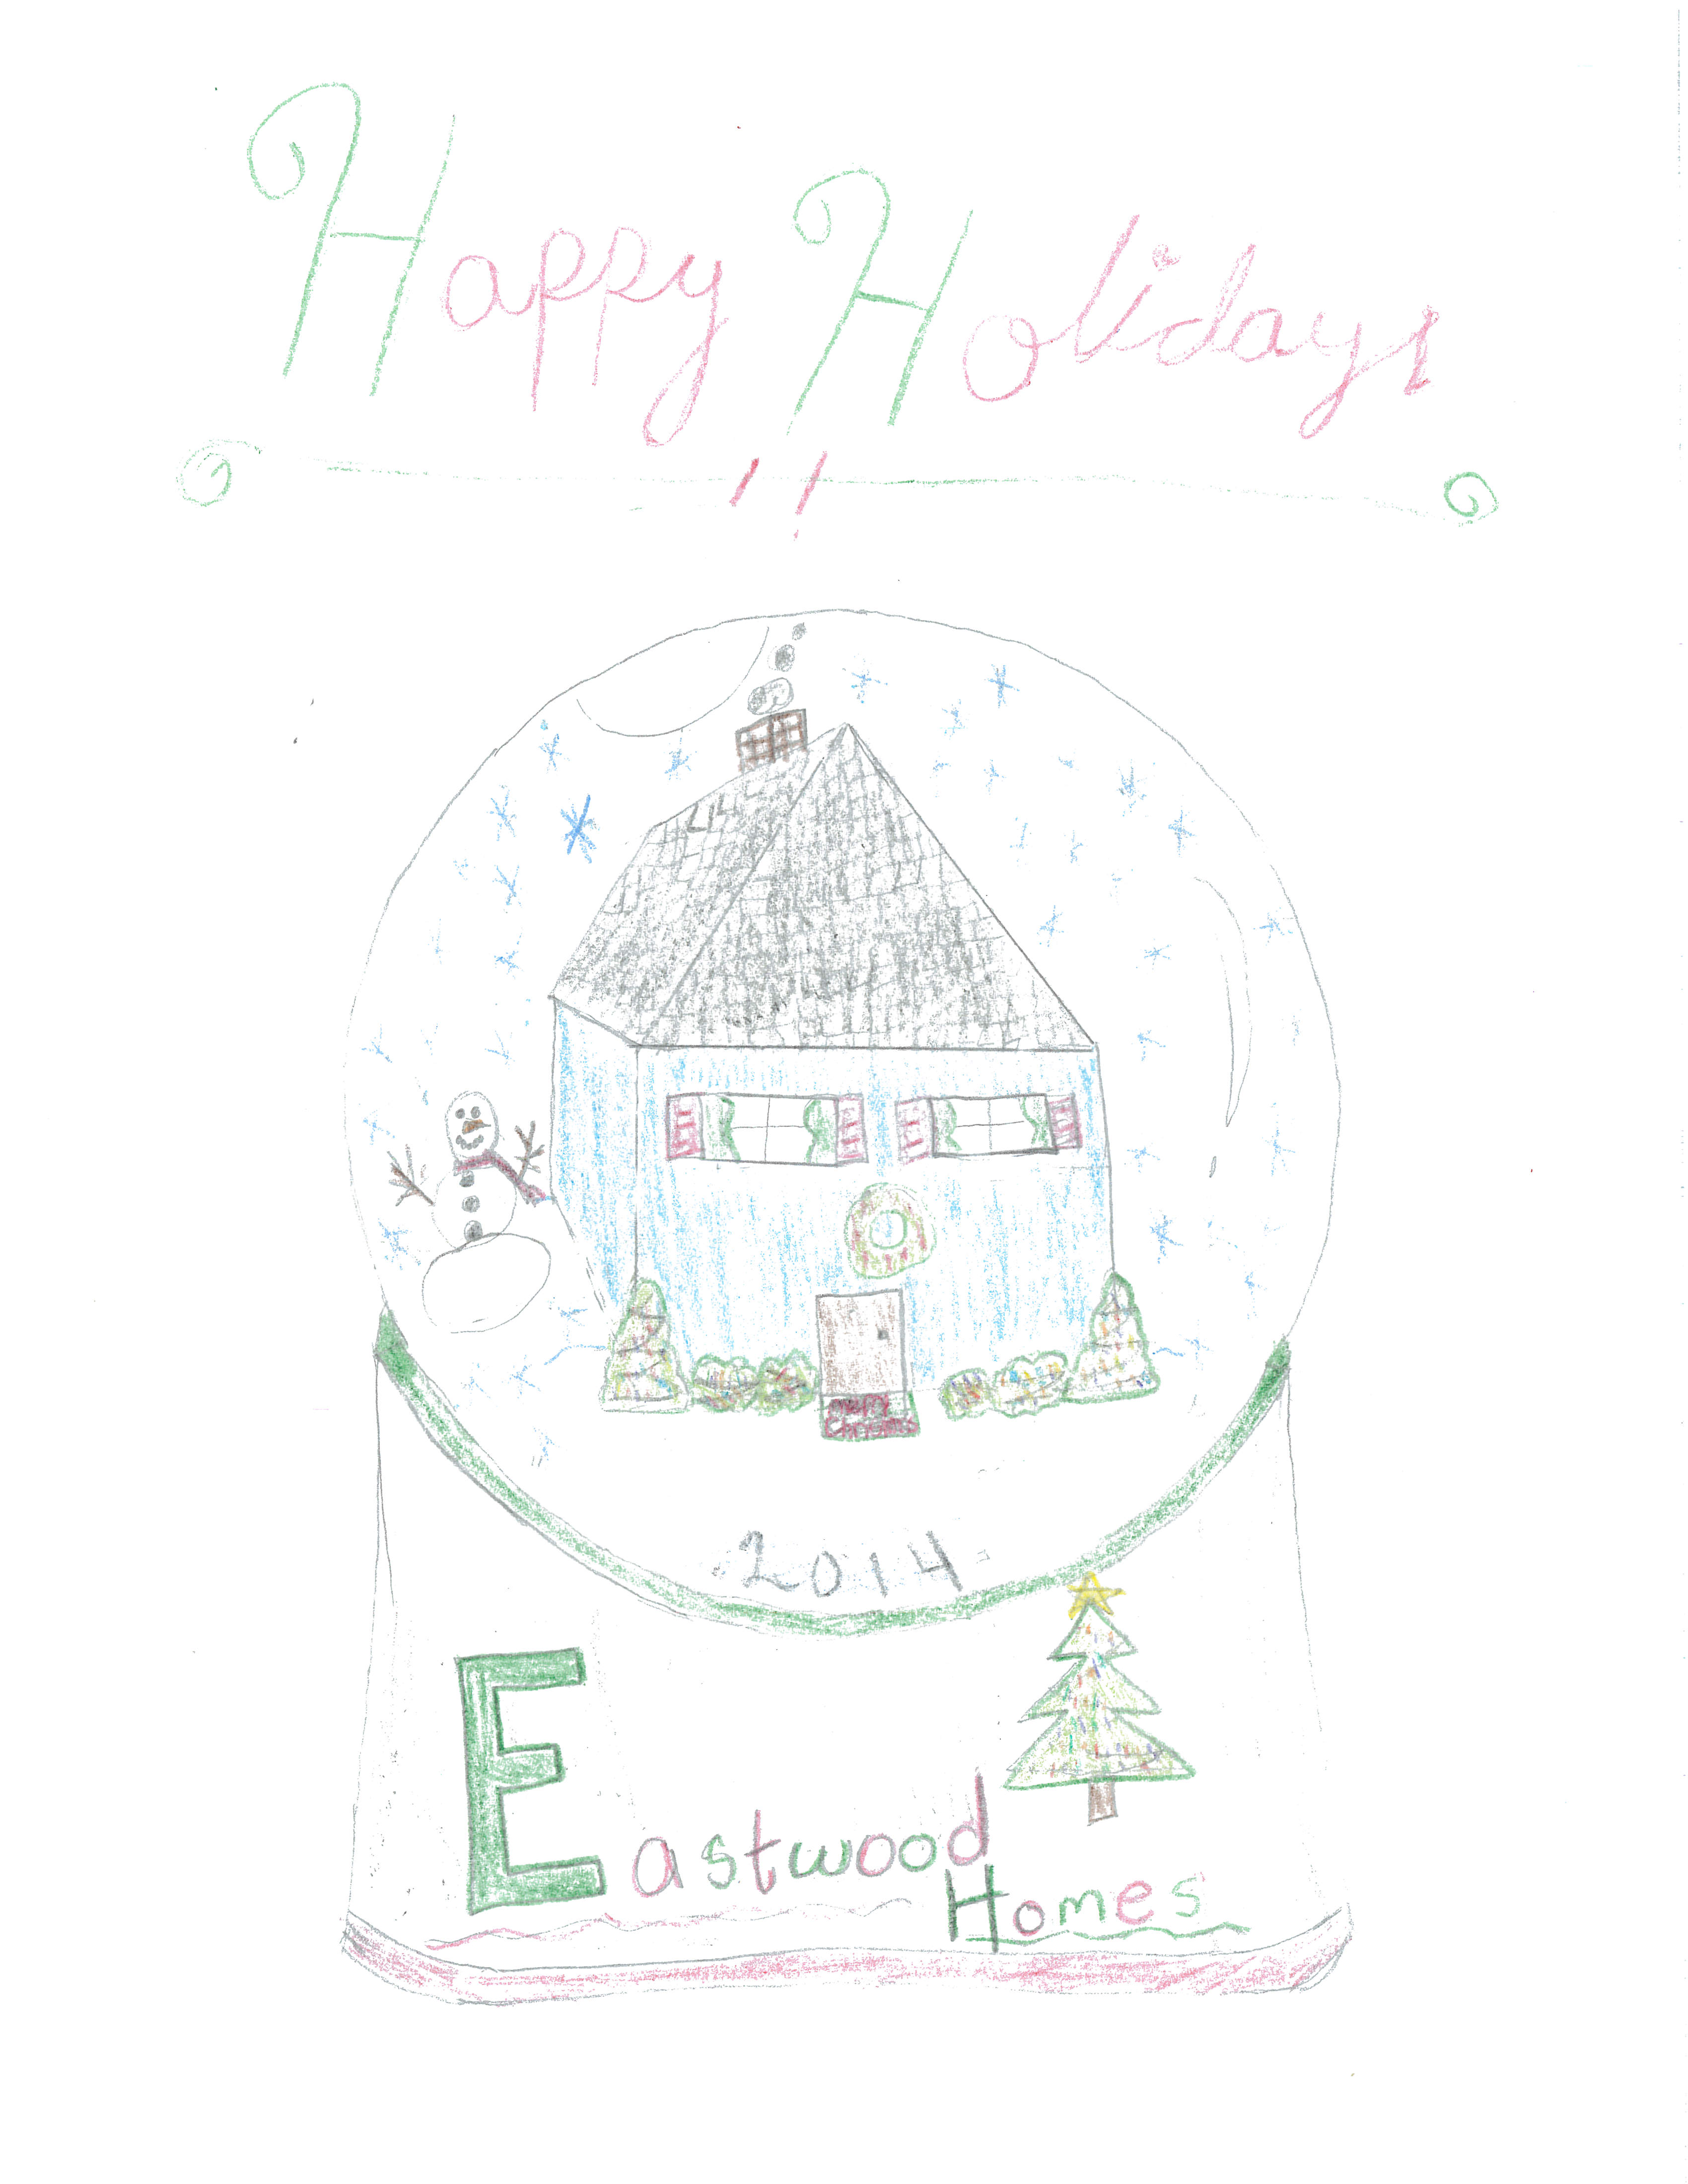 Announcing the finalists in our 5th Annual Holiday Card